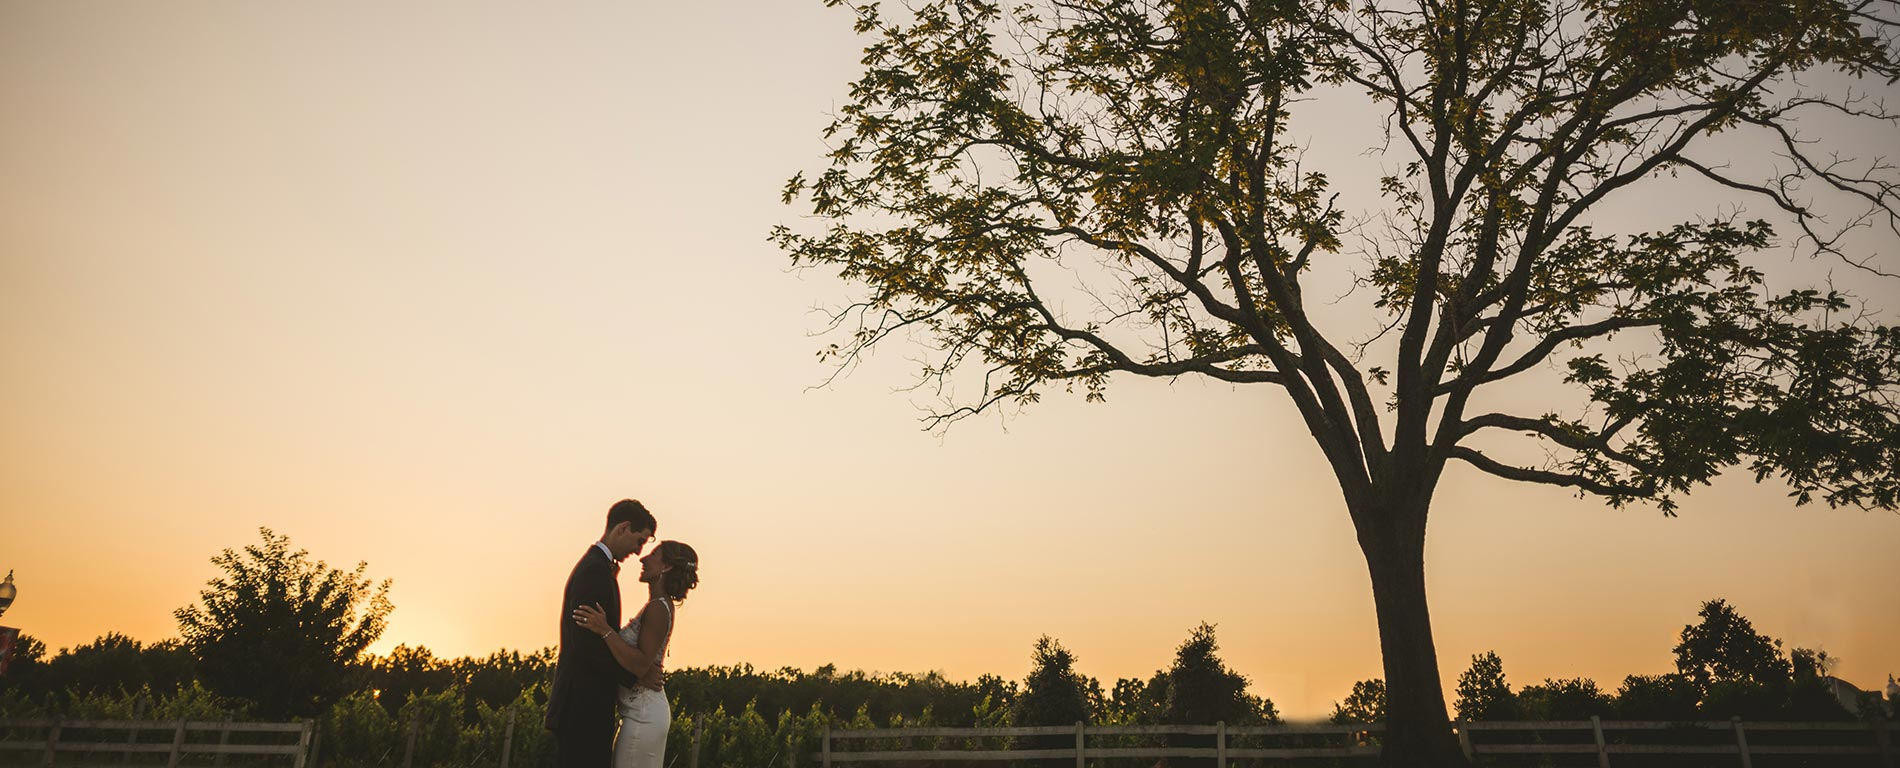 morais-vinyards-and-winery-home-slider-happy-couple-outside-sunset-vineyard Home